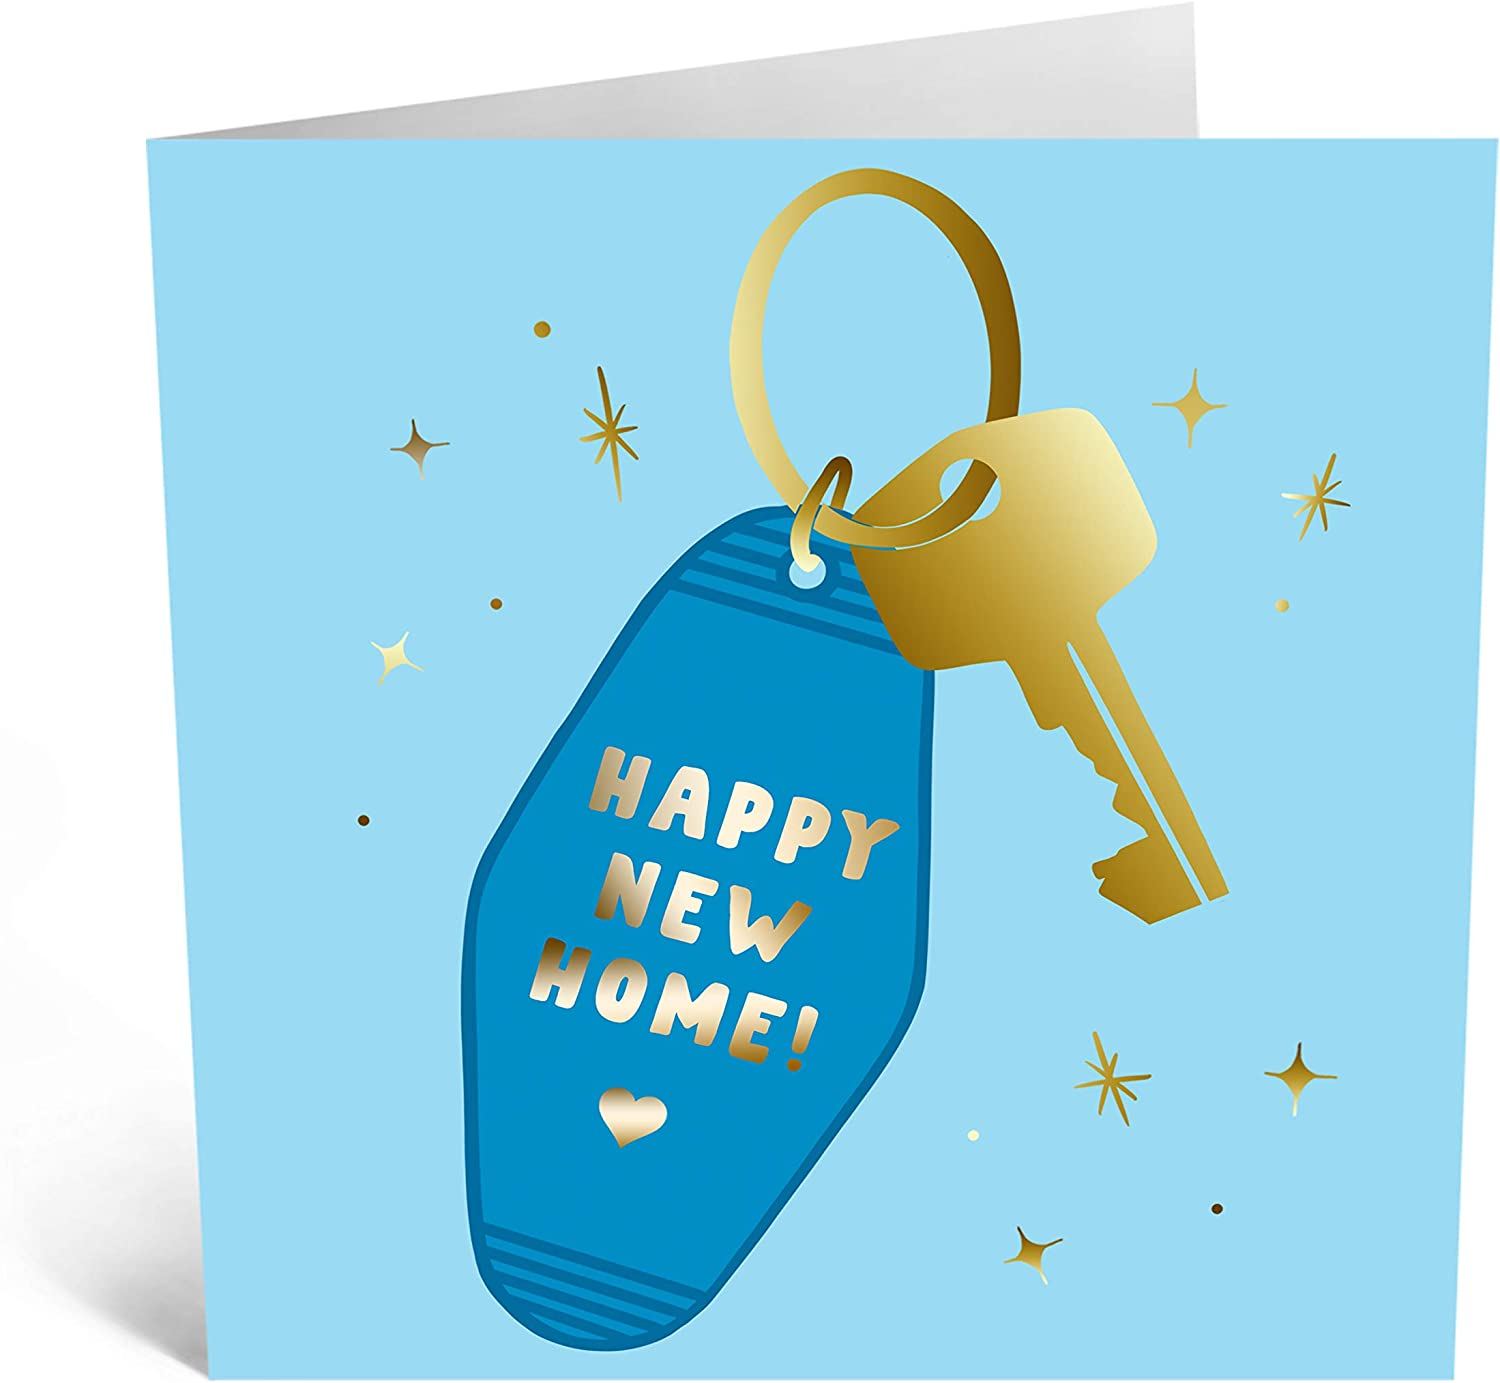 Central 23 - New Home Card - Congratulations On Your New Home - 'Happy New Home' - Welcome Card - Comes with Cute Stickers